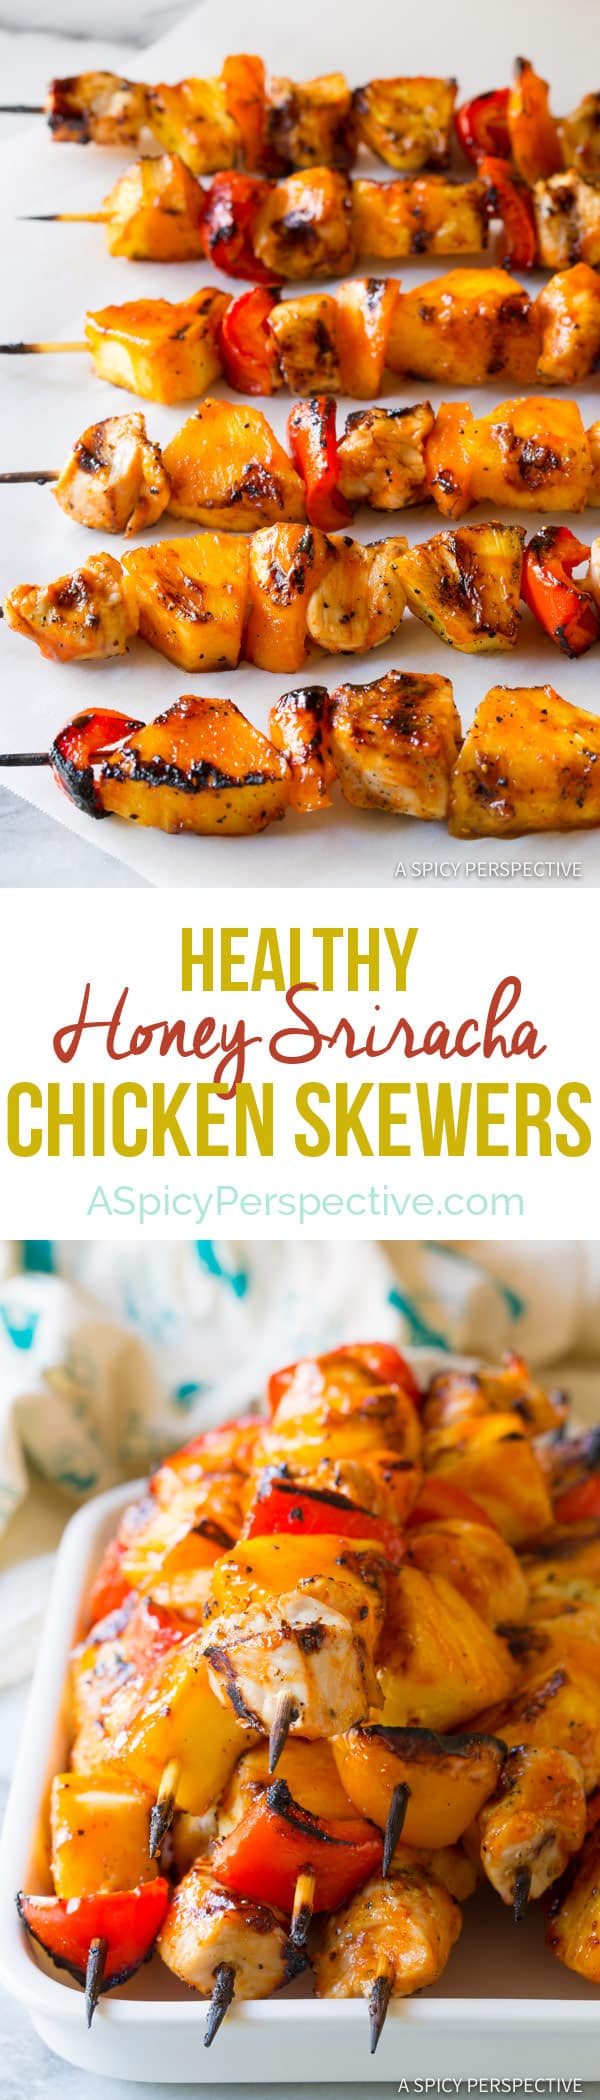 Easy to Make Honey Sriracha Chicken Skewers | ASpicyPerspective.com